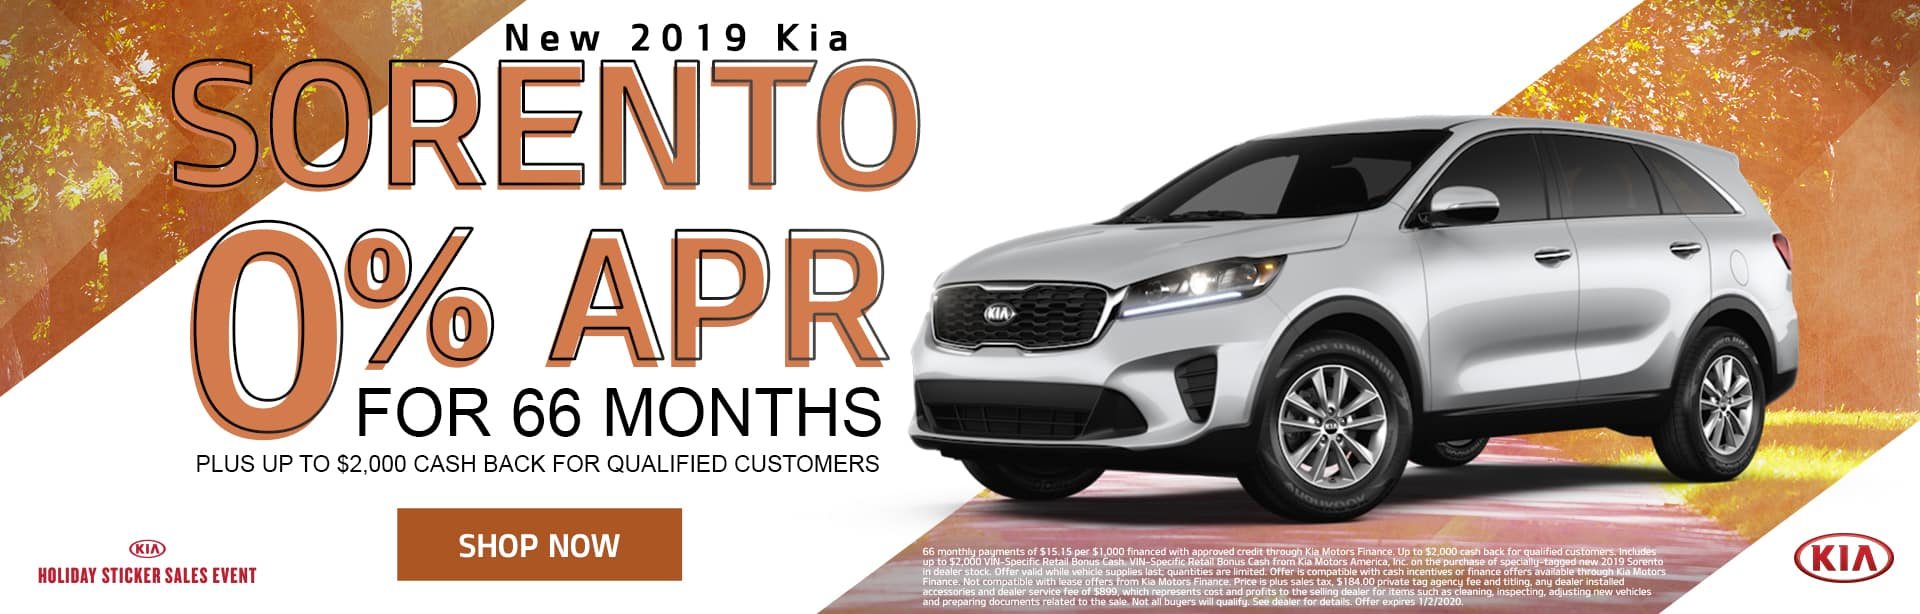 New 2019 Kia Sorento | 0% APR For 66 Months Plus Up To $2,000 Cash Back For Qualified Customers